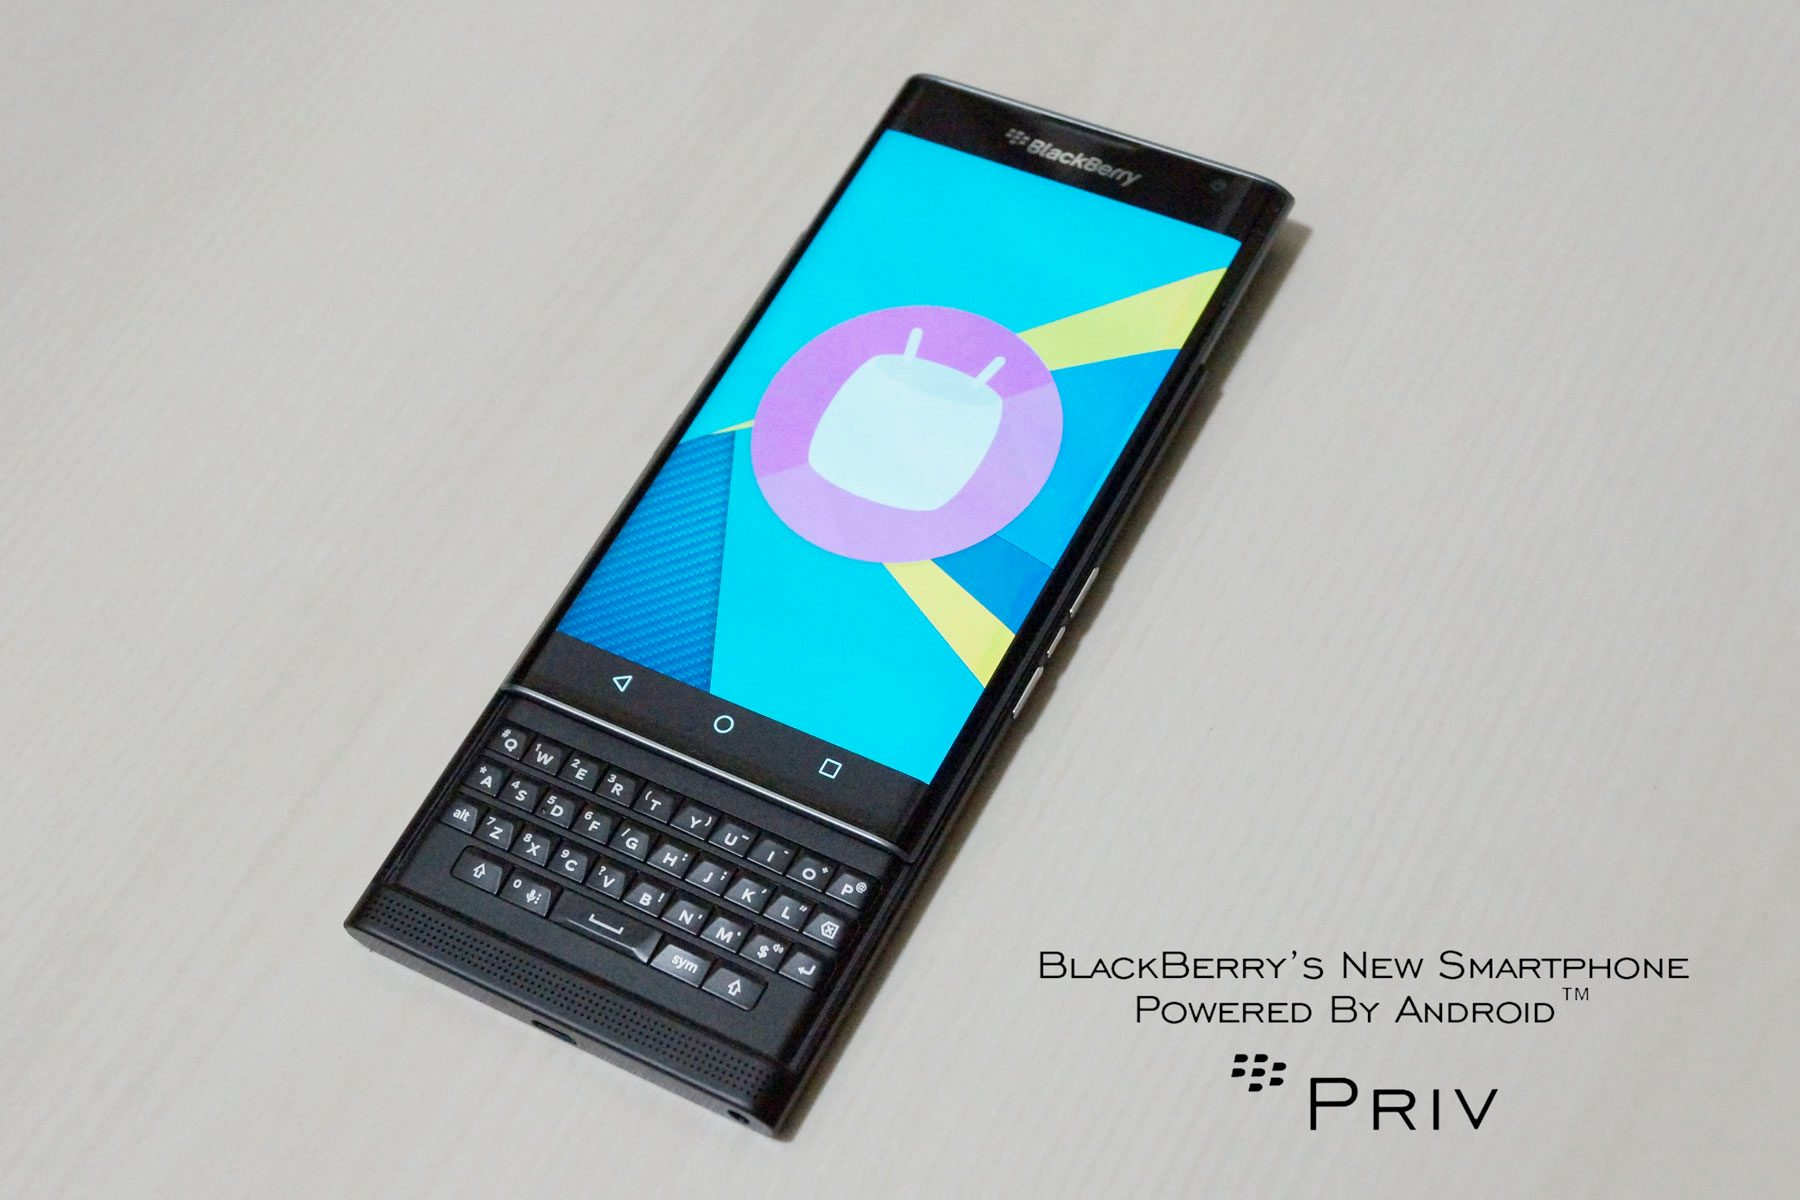 blackberrypriv-update-egg